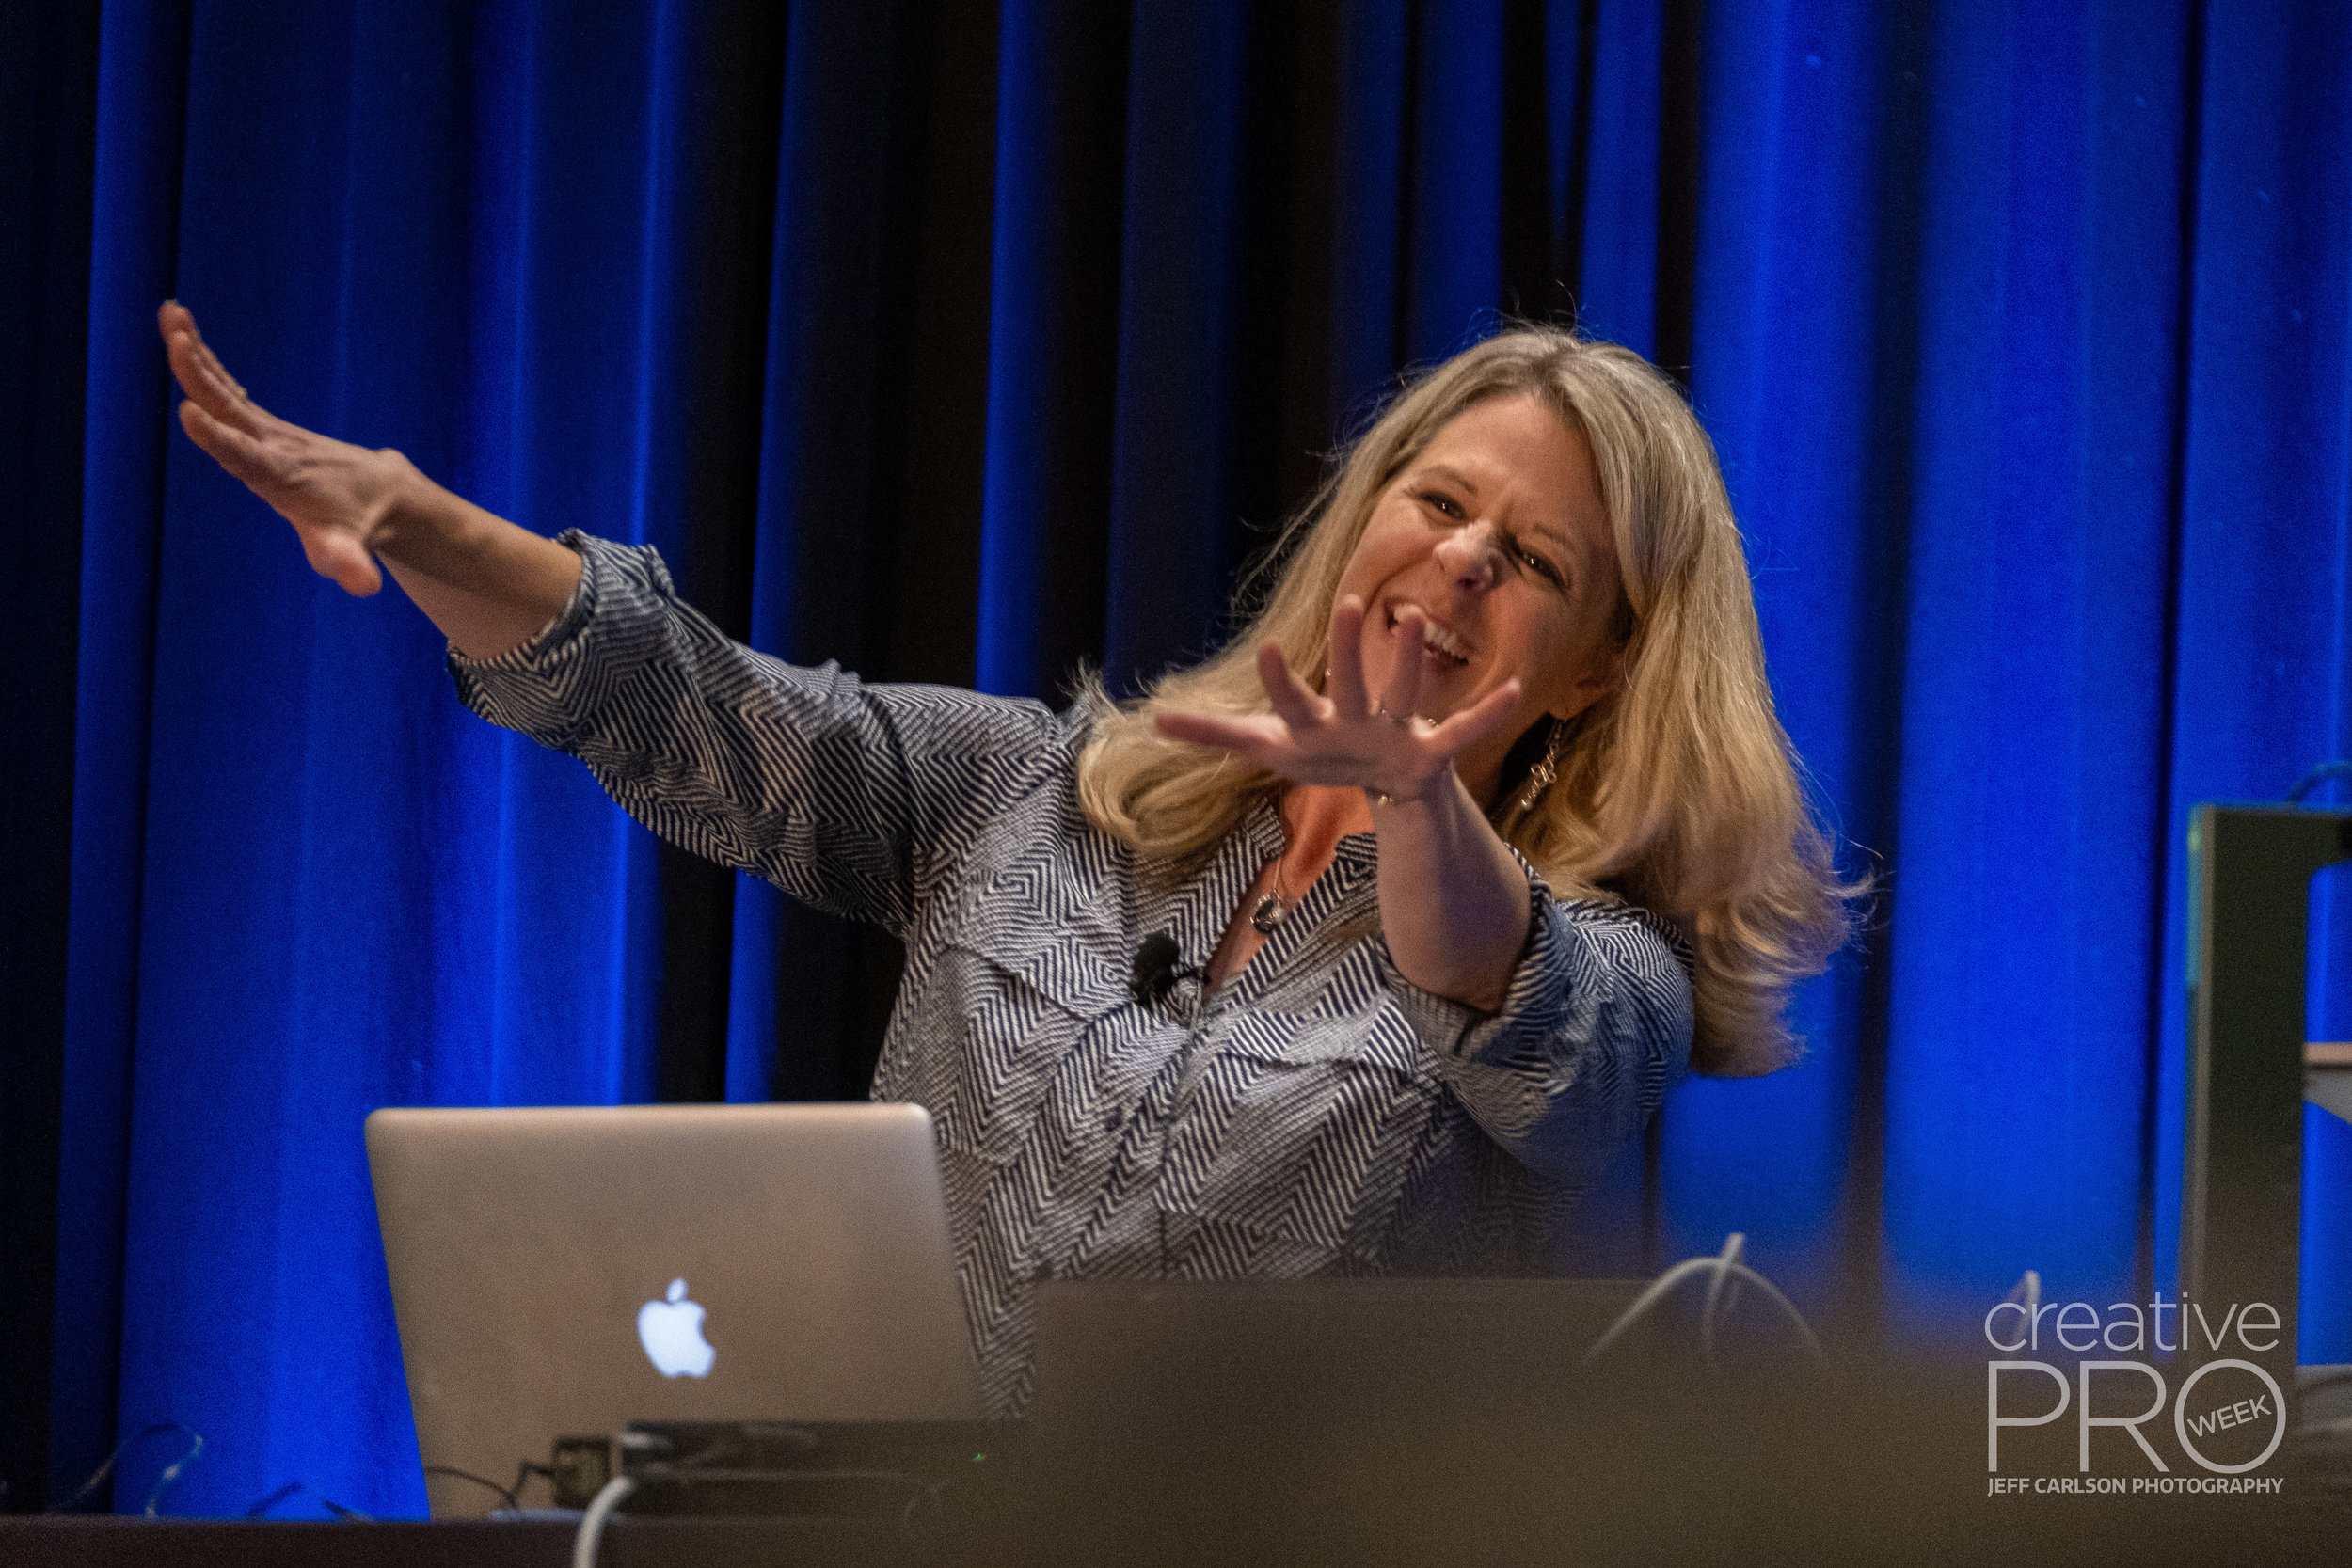 Speaker Laurie Ruhlin at CreativePro Week 2019  Camera: Fujifilm X-T3 Shutter speed: 1/125 sec Aperture: f/2.8 ISO: 3200 Lens: Fujifilm XF 50-140mm f/2.8 LM OIS WR Photo: Jeff Carlson, courtesy of CreativePro Week